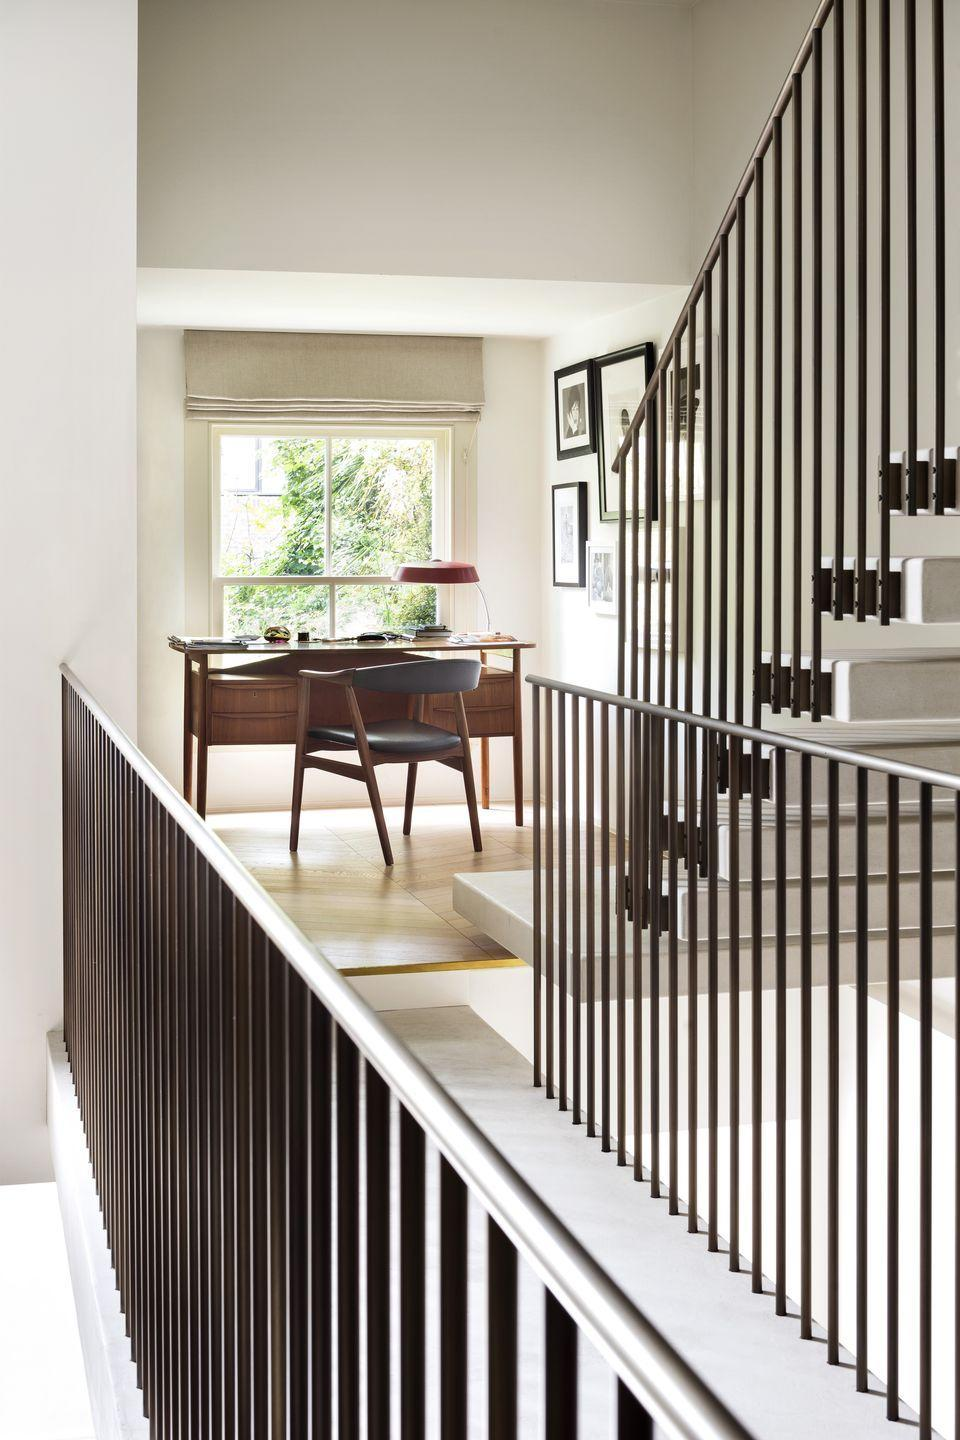 """<p>The perfect example of a unique space that's been brilliantly capitalised on. This desk occupies a sunny spot by the window on the landing of a London home designed by architecture firm Michaelis Boyd. Not every home may have a central staircase with this much drama but, whatever size, the landing is often an area with underused space. <a href=""""https://www.michaelisboyd.com/"""" rel=""""nofollow noopener"""" target=""""_blank"""" data-ylk=""""slk:michaelisboyd.com"""" class=""""link rapid-noclick-resp"""">michaelisboyd.com</a></p>"""